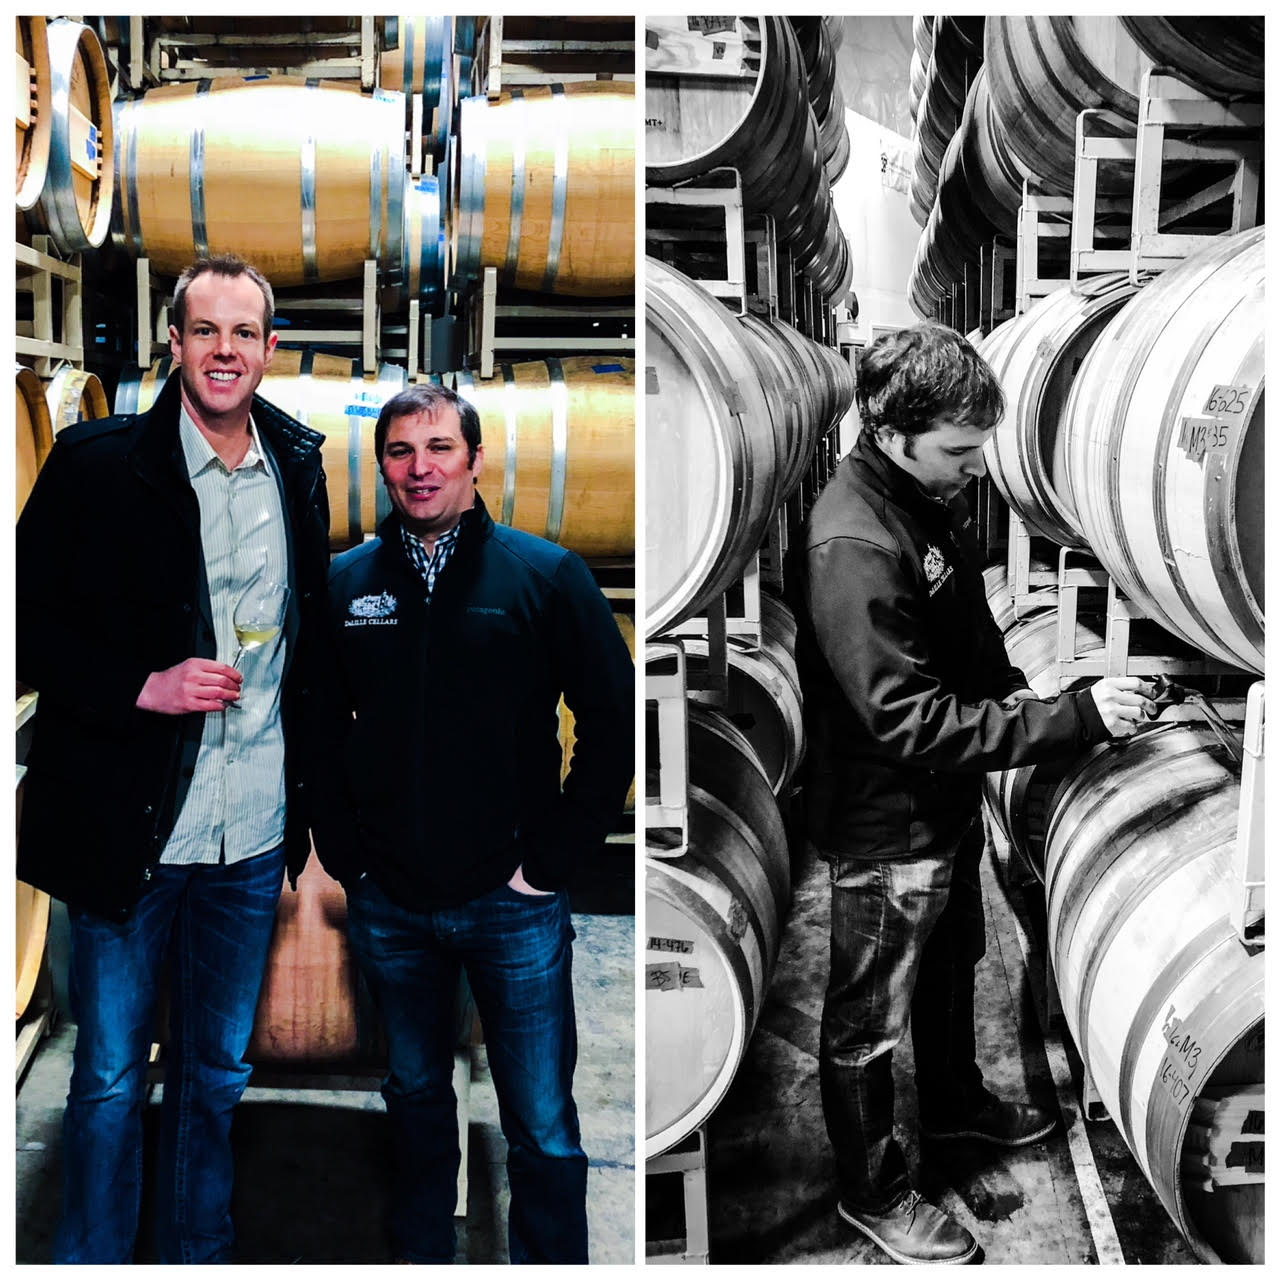 It was a great day of barrel tasting with superstar winemaker, Jason Gorski, of DeLille Cellars.